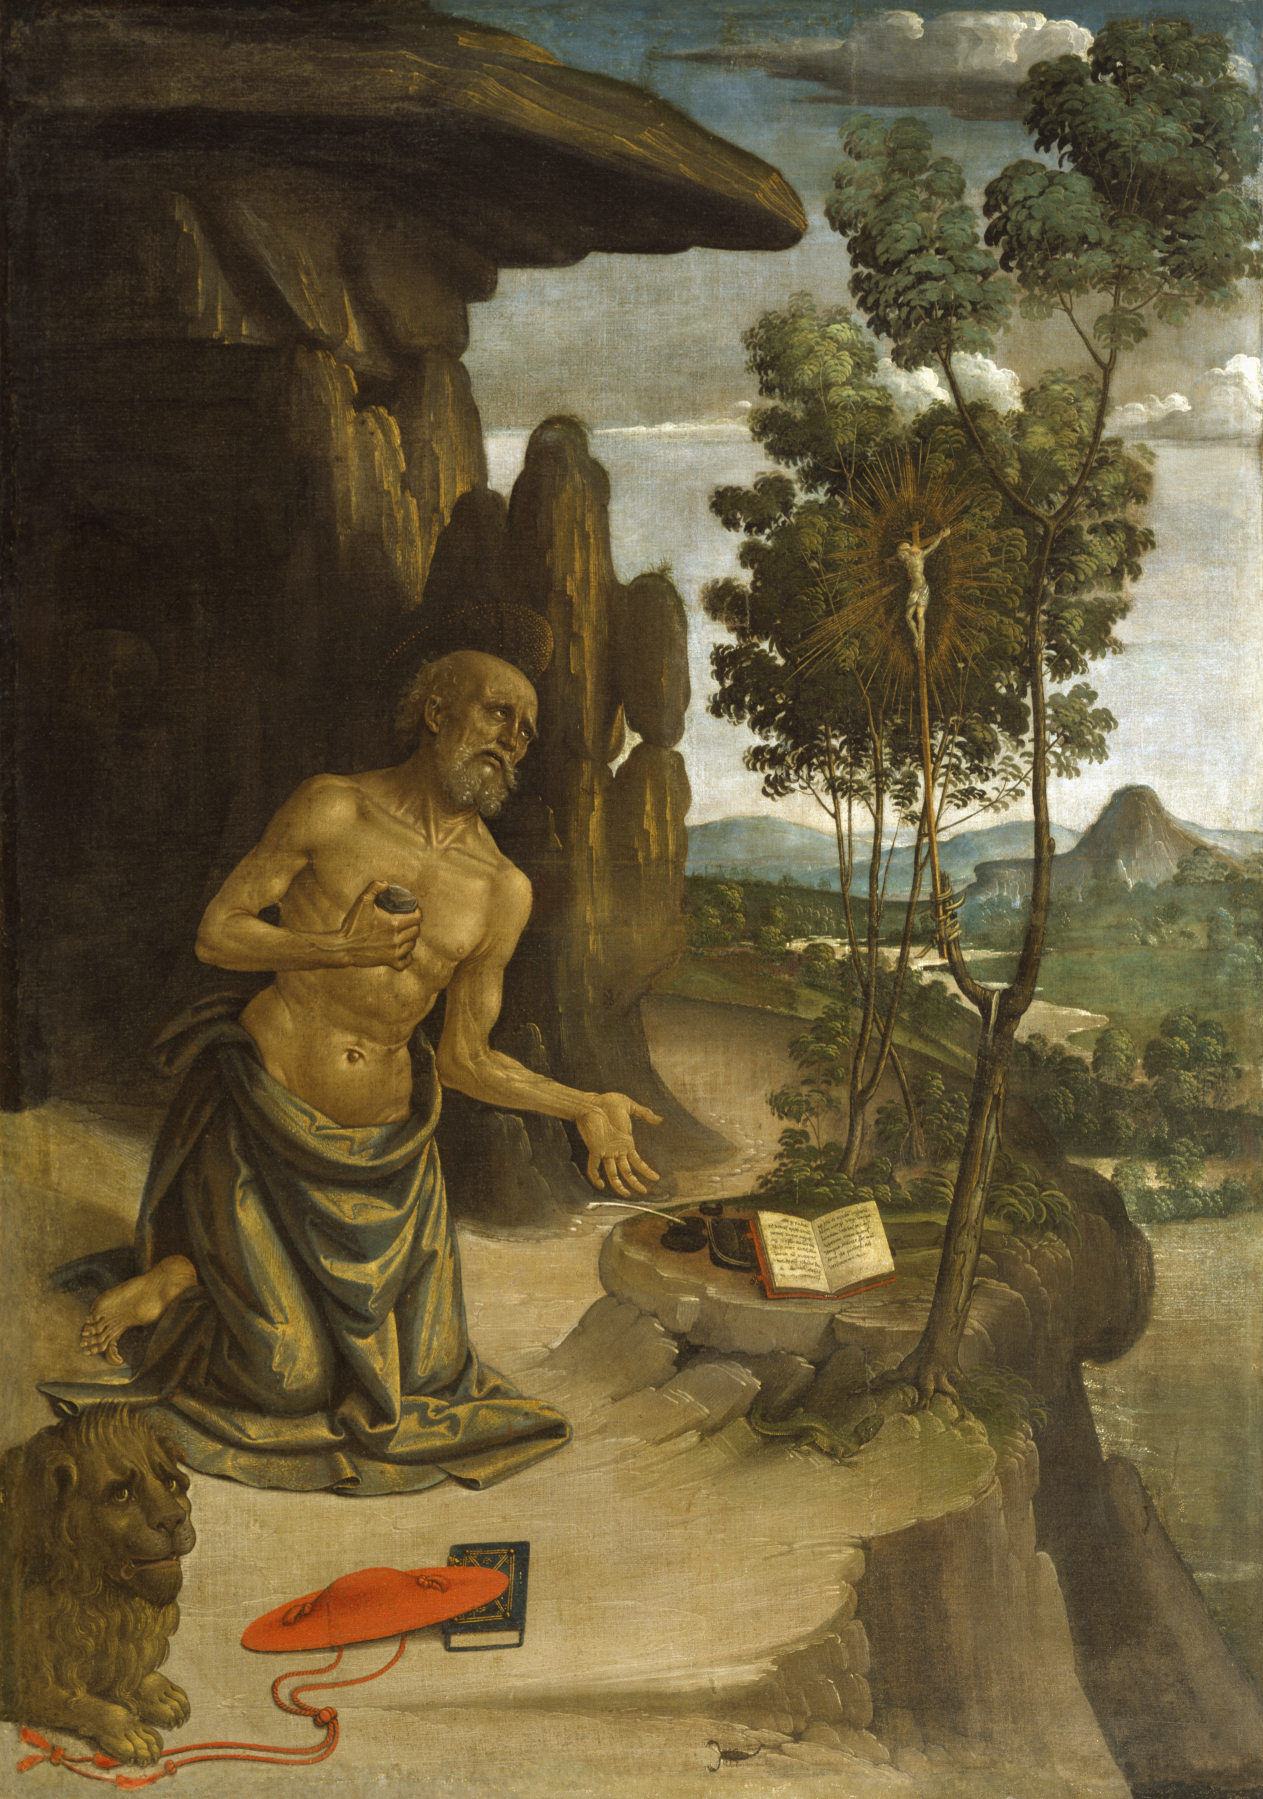 https://upload.wikimedia.org/wikipedia/commons/9/90/Bernardino_Pinturicchio_-_Saint_Jerome_in_the_Wilderness_-_Walters_371089.jpg